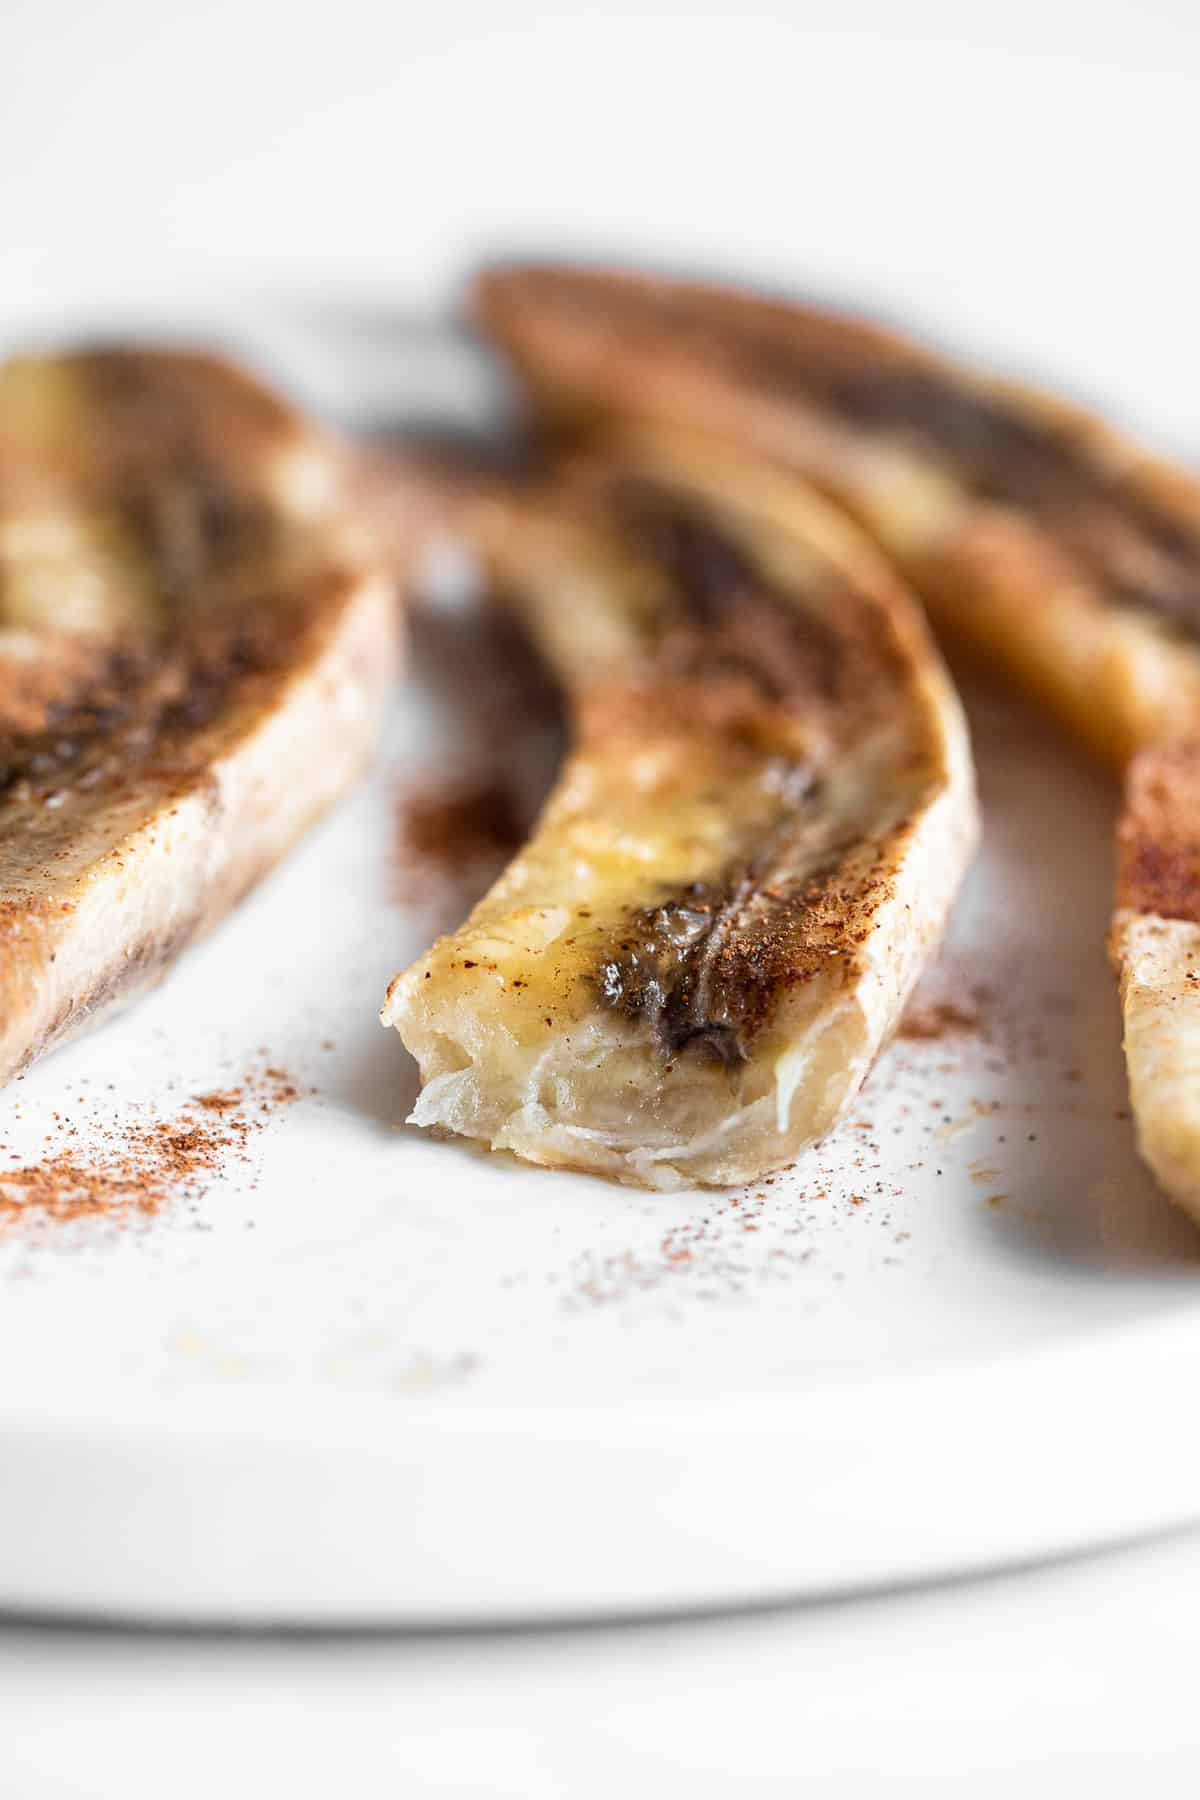 sliced baked bananas with cinnamon on top